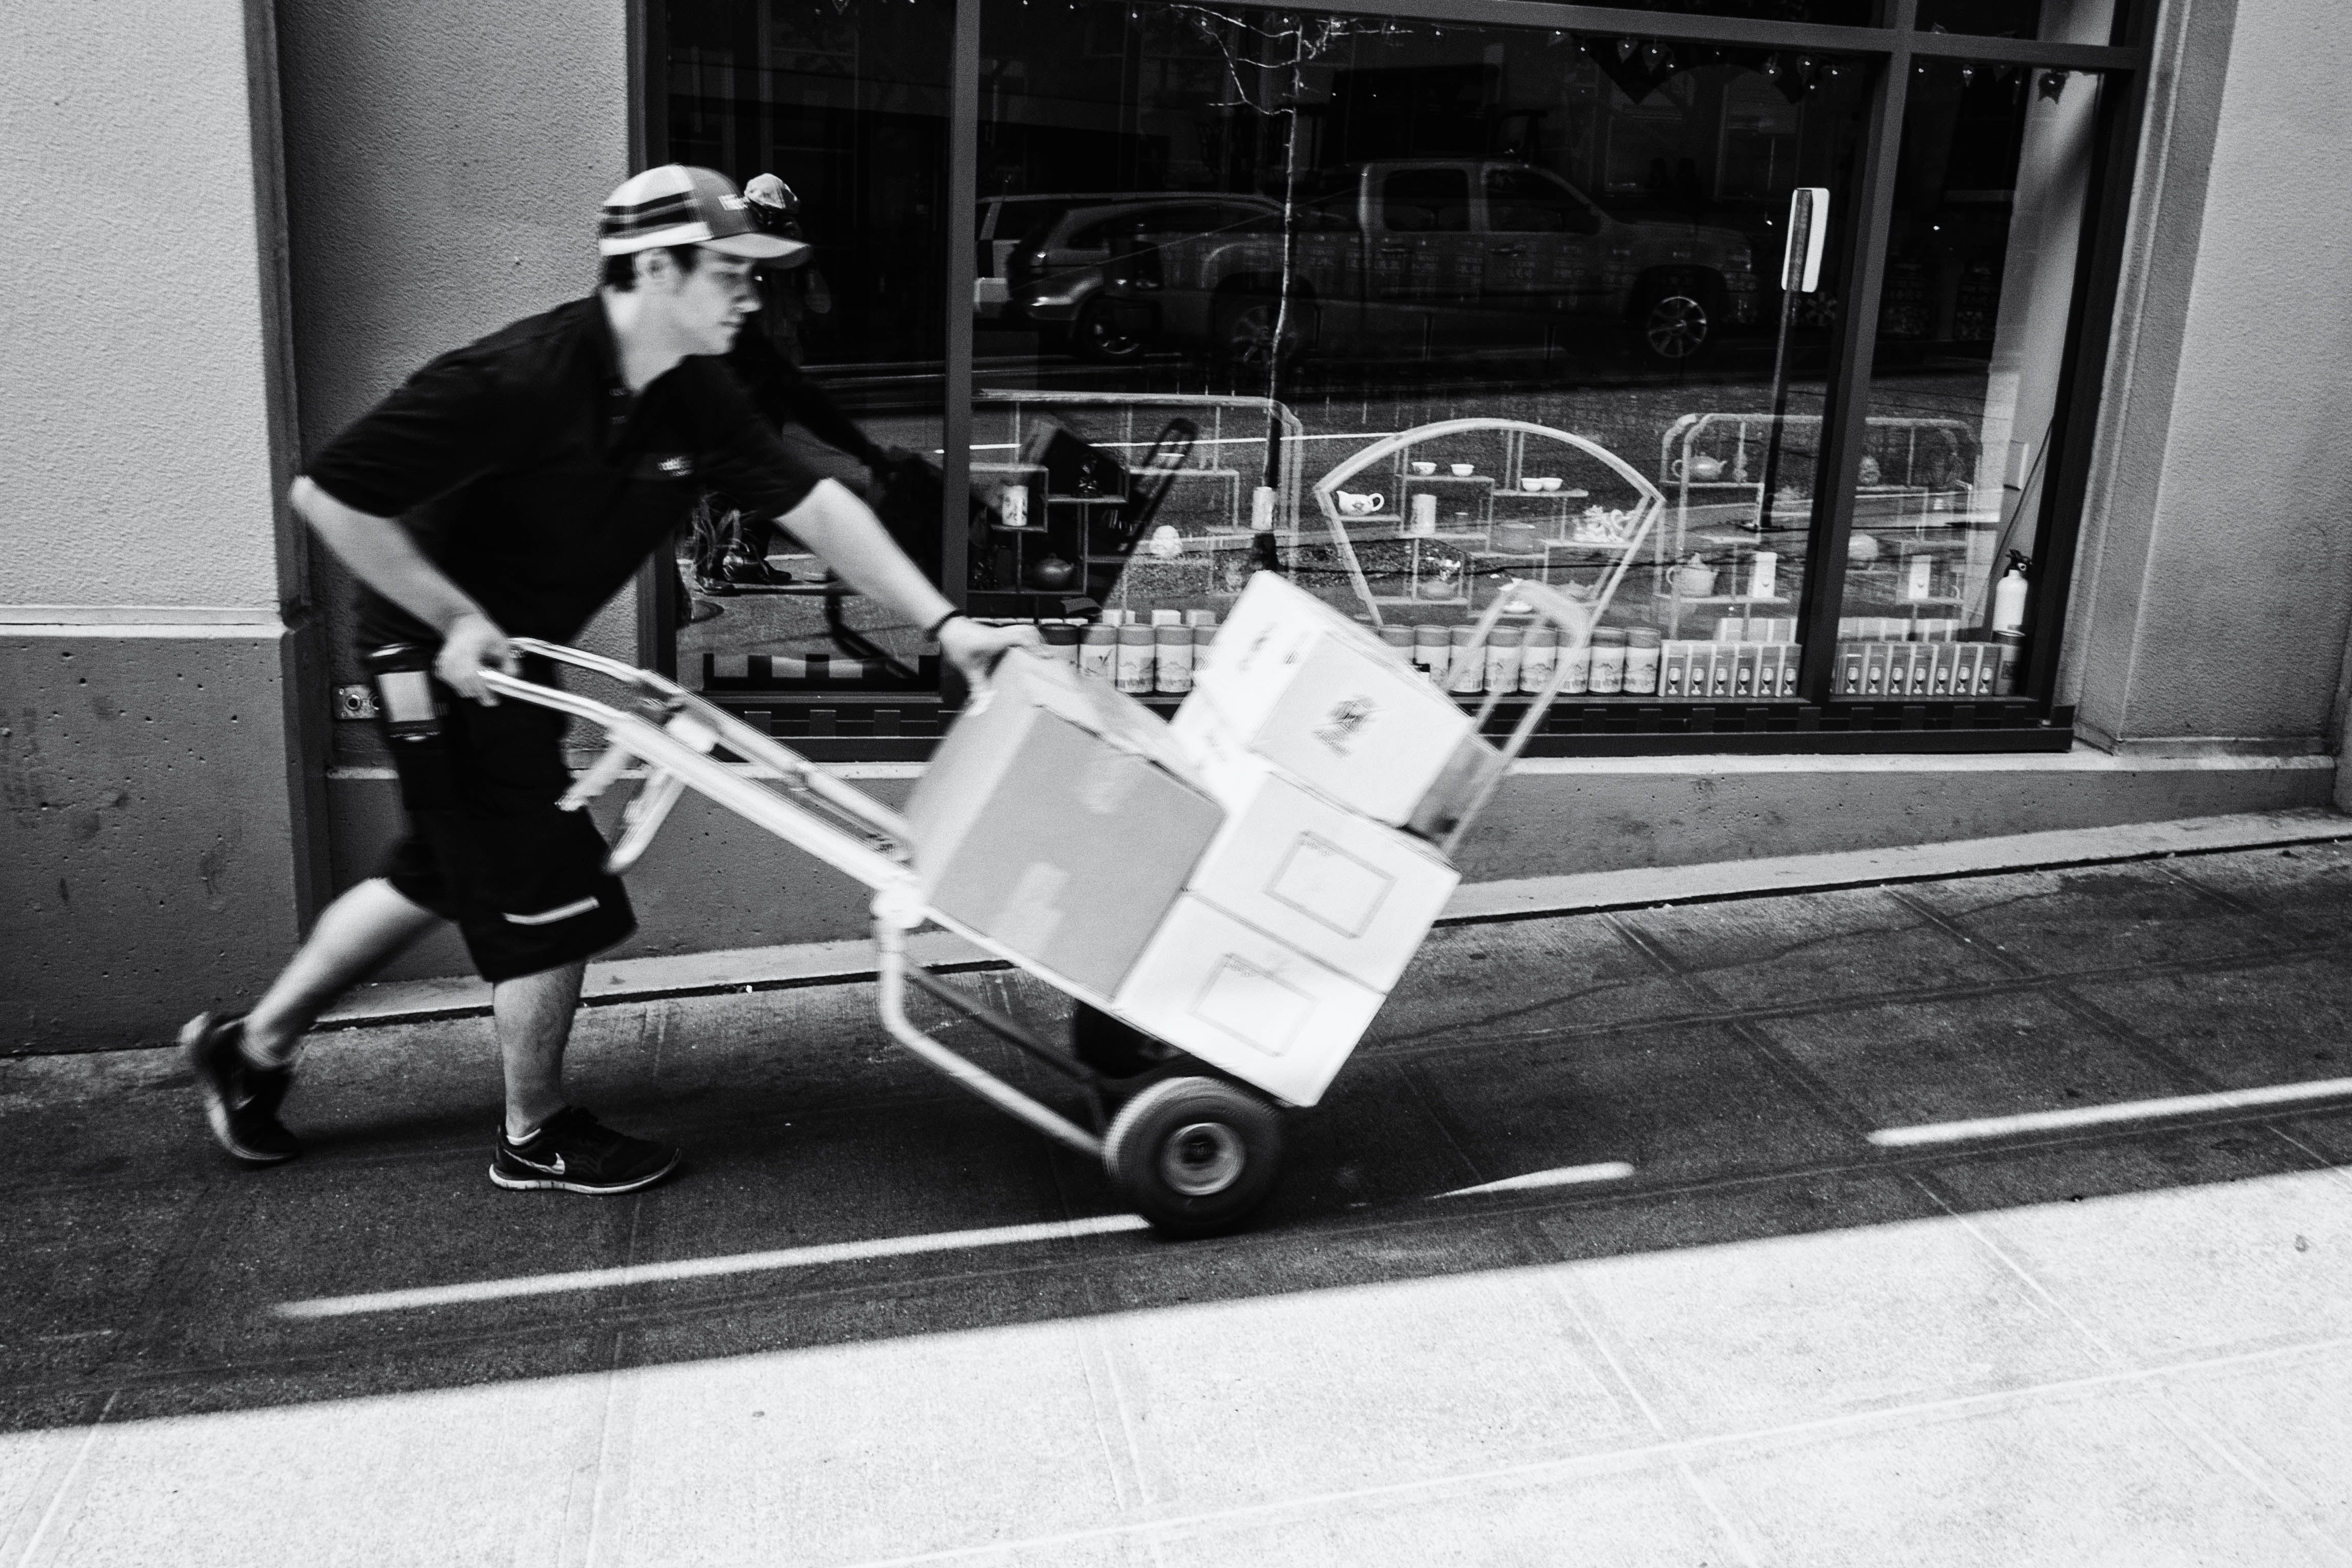 Uphill Delivery